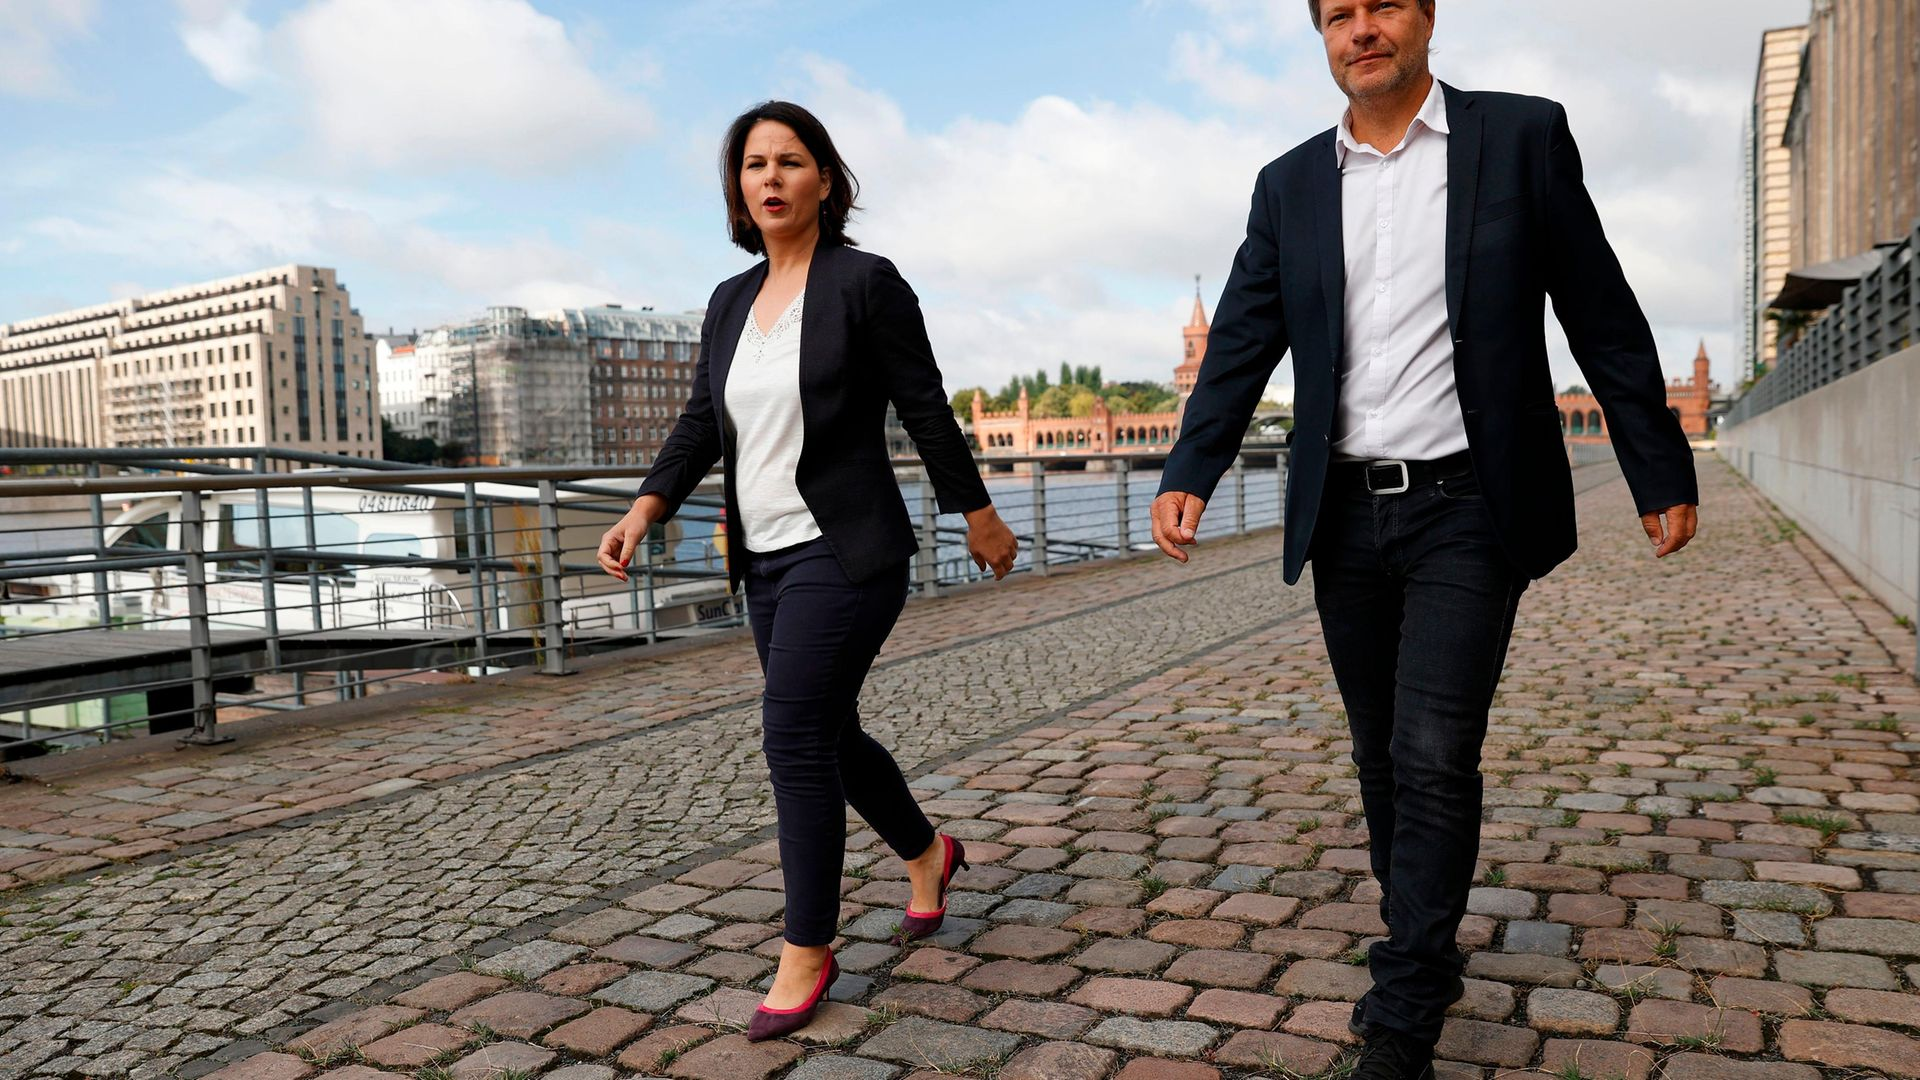 Annalena Baerbock (L) beat co-leader Robert Habeck on Monday to represent the Greens' in the federal election in September in which the party is widely tipped to do well - Credit: AFP via Getty Images